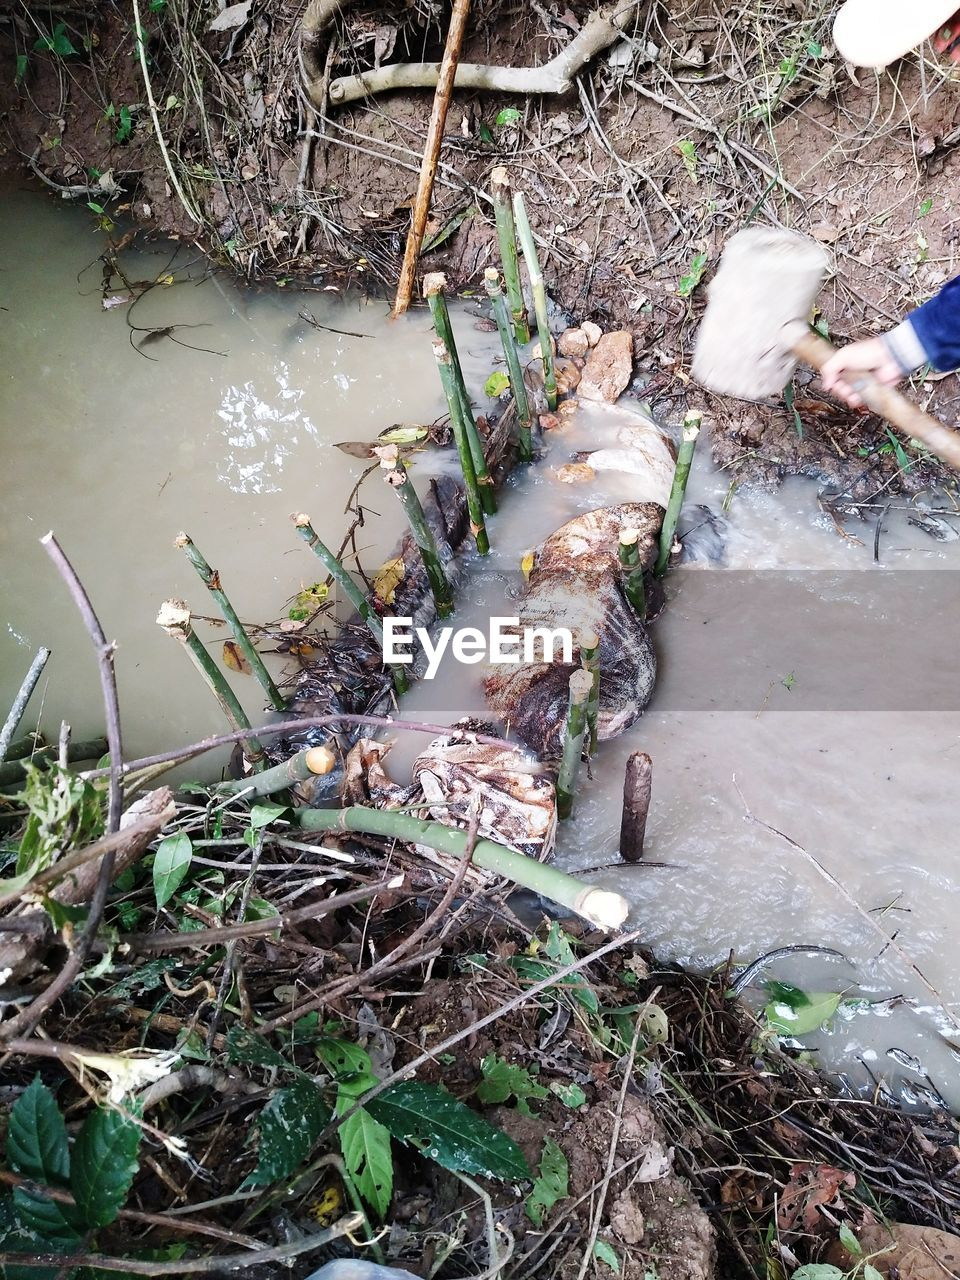 water, plant, nature, day, high angle view, human body part, land, outdoors, real people, plant part, leaf, forest, growth, river, people, body part, dirt, stick - plant part, human foot